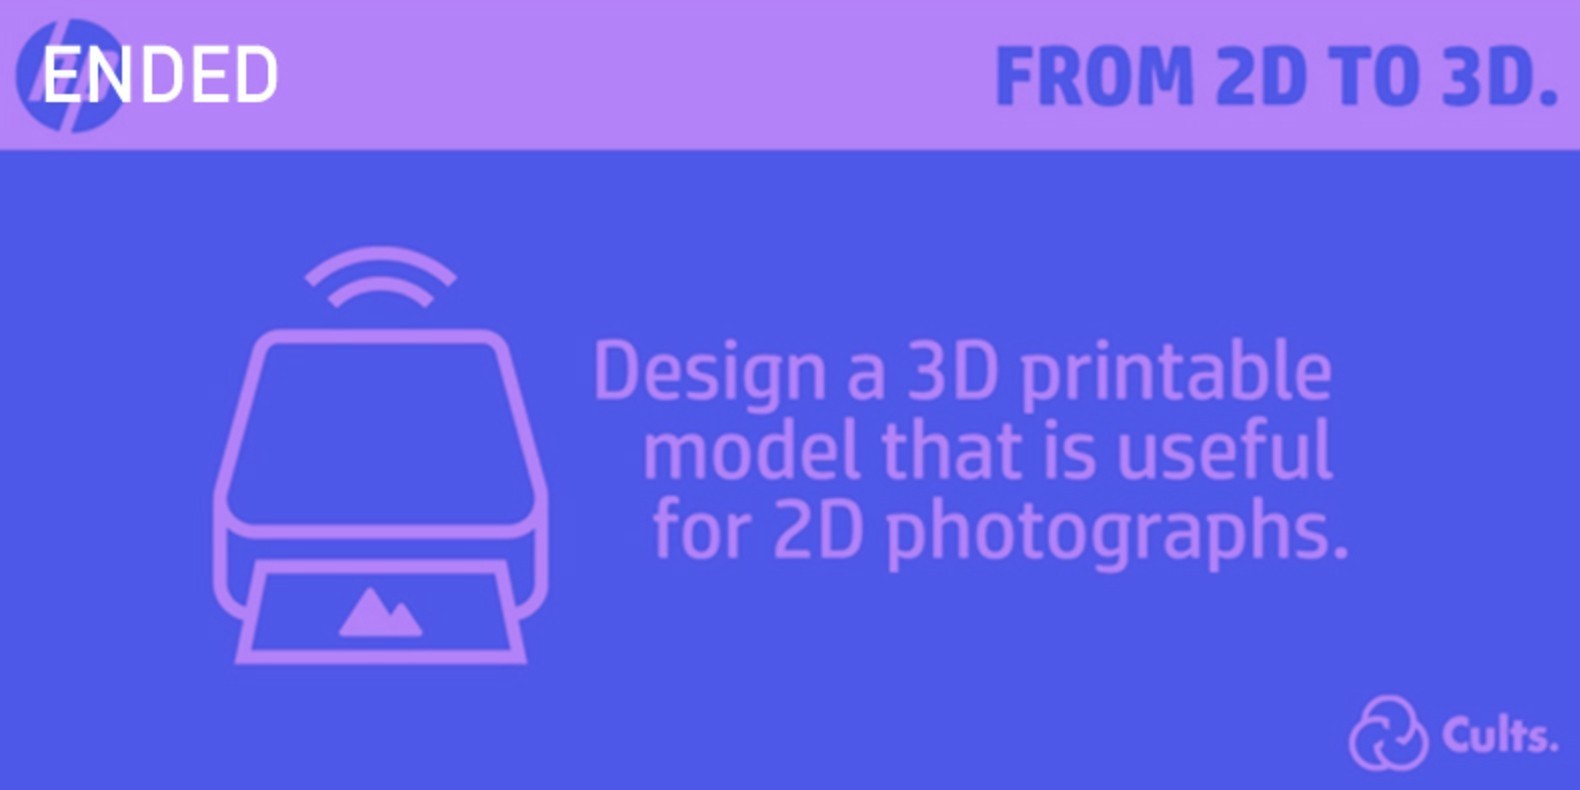 The design and 3D printing challenge around photo and camera.